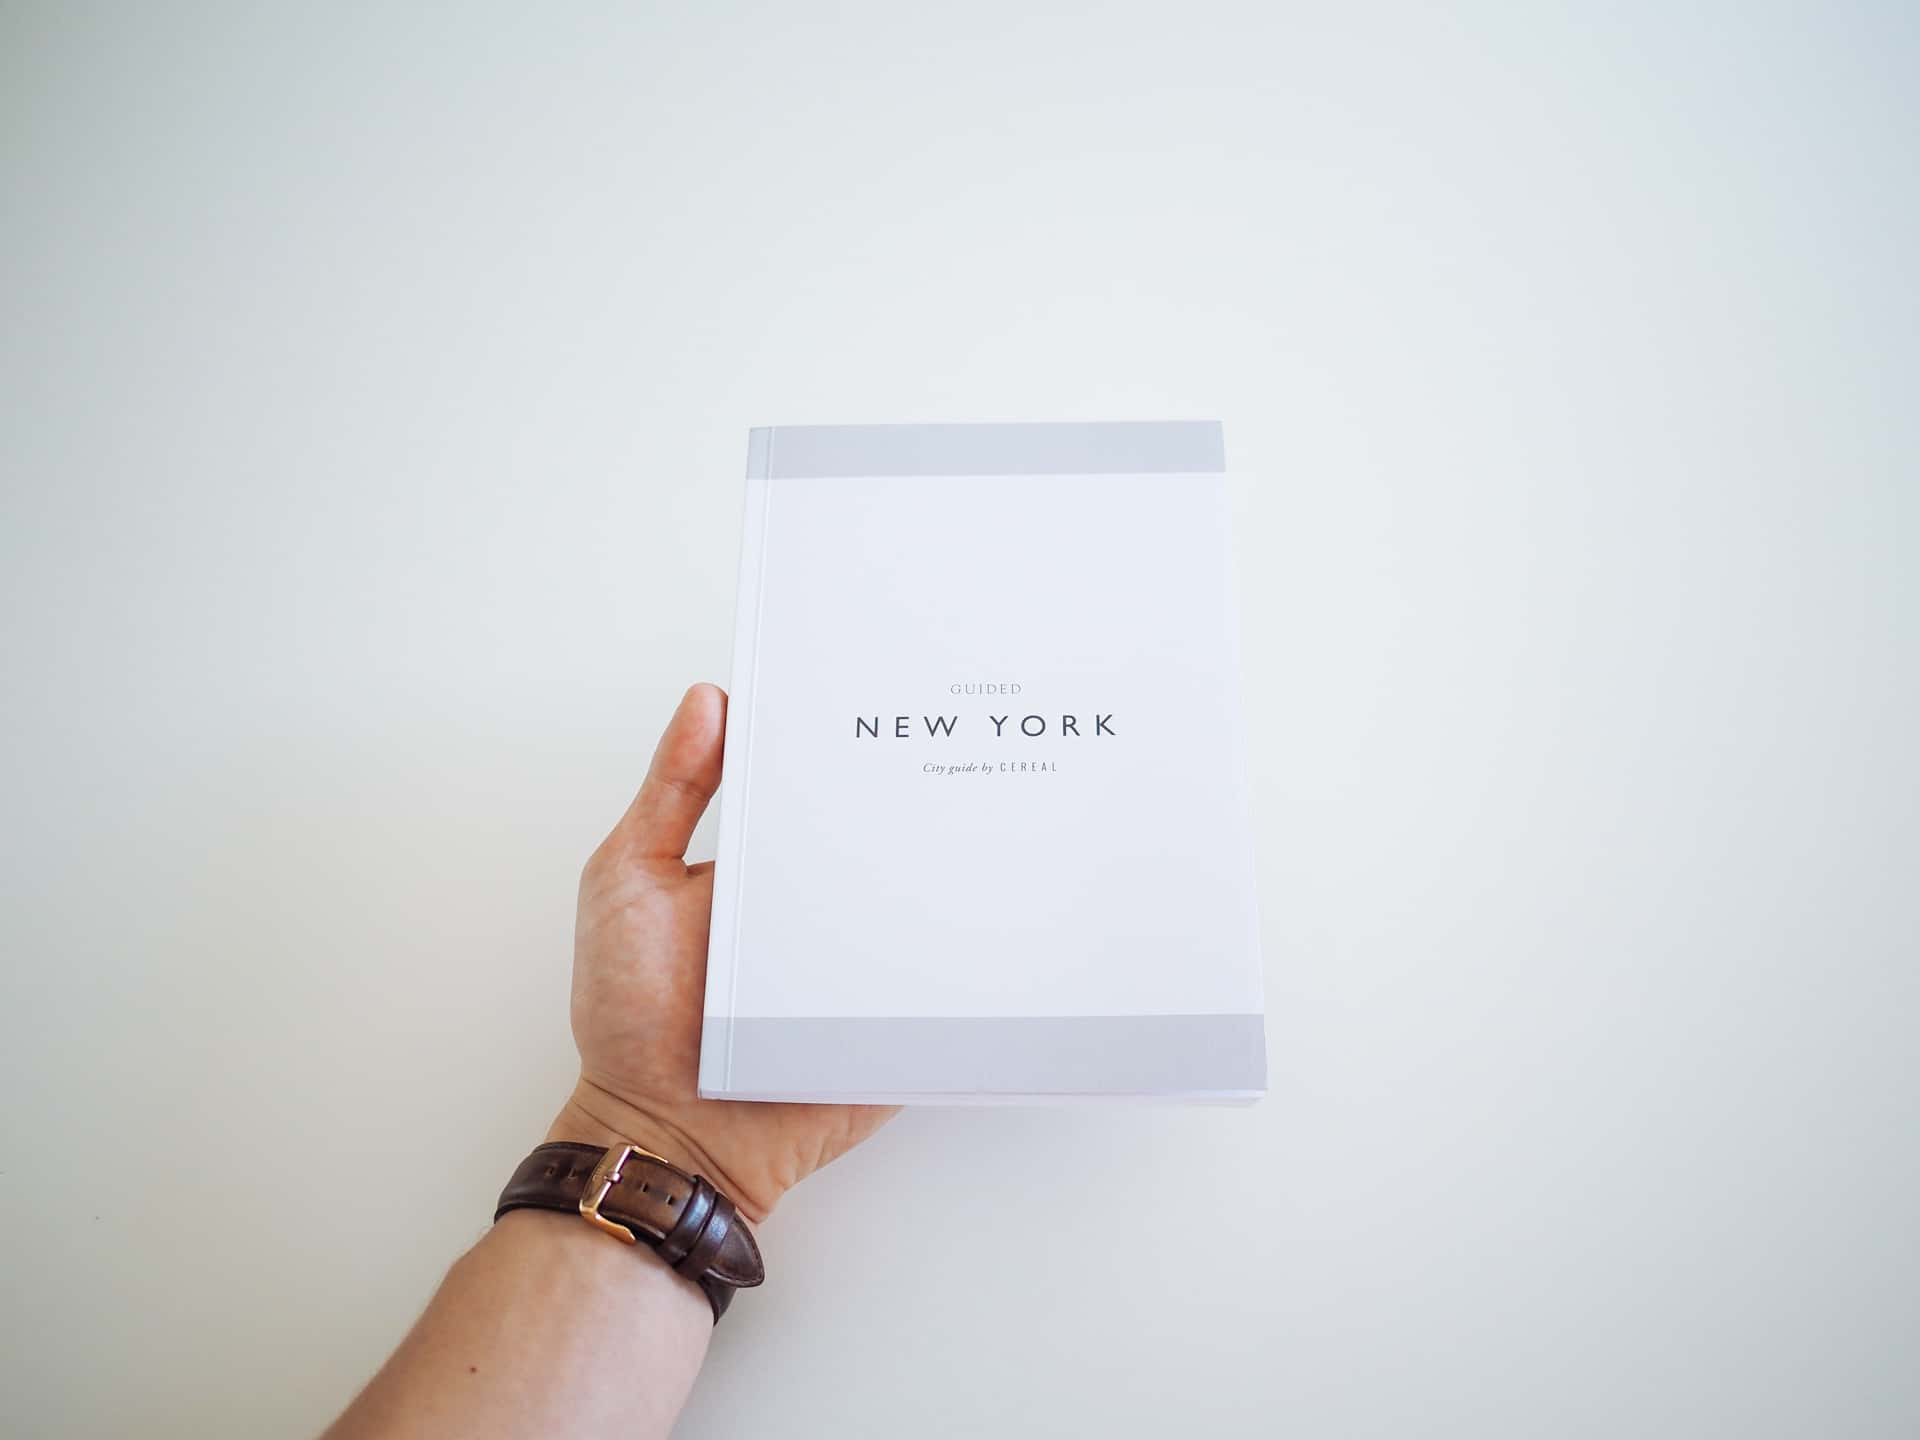 Guided New York — A City Guide by CEREAL The Newsprint